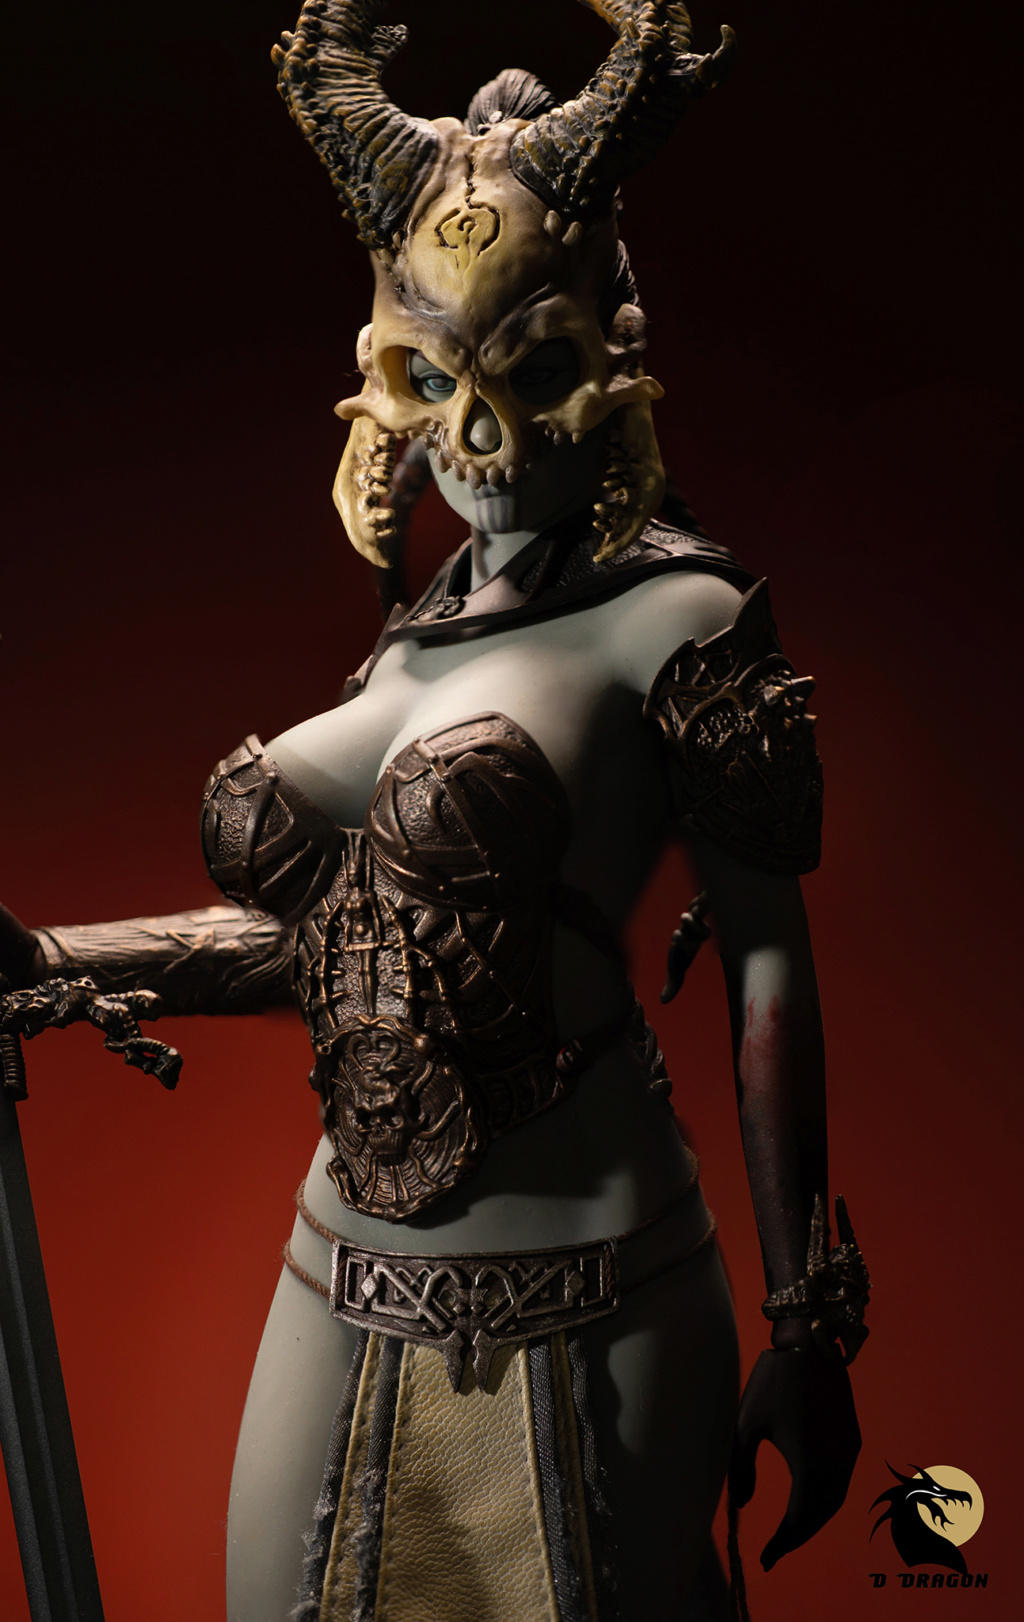 tbleague - NEW PRODUCT: TBLeague & Sideshow: 1/6 Court of the Dead - Valkyrie Cole / Kier movable doll (PL2019-141) Kier_811